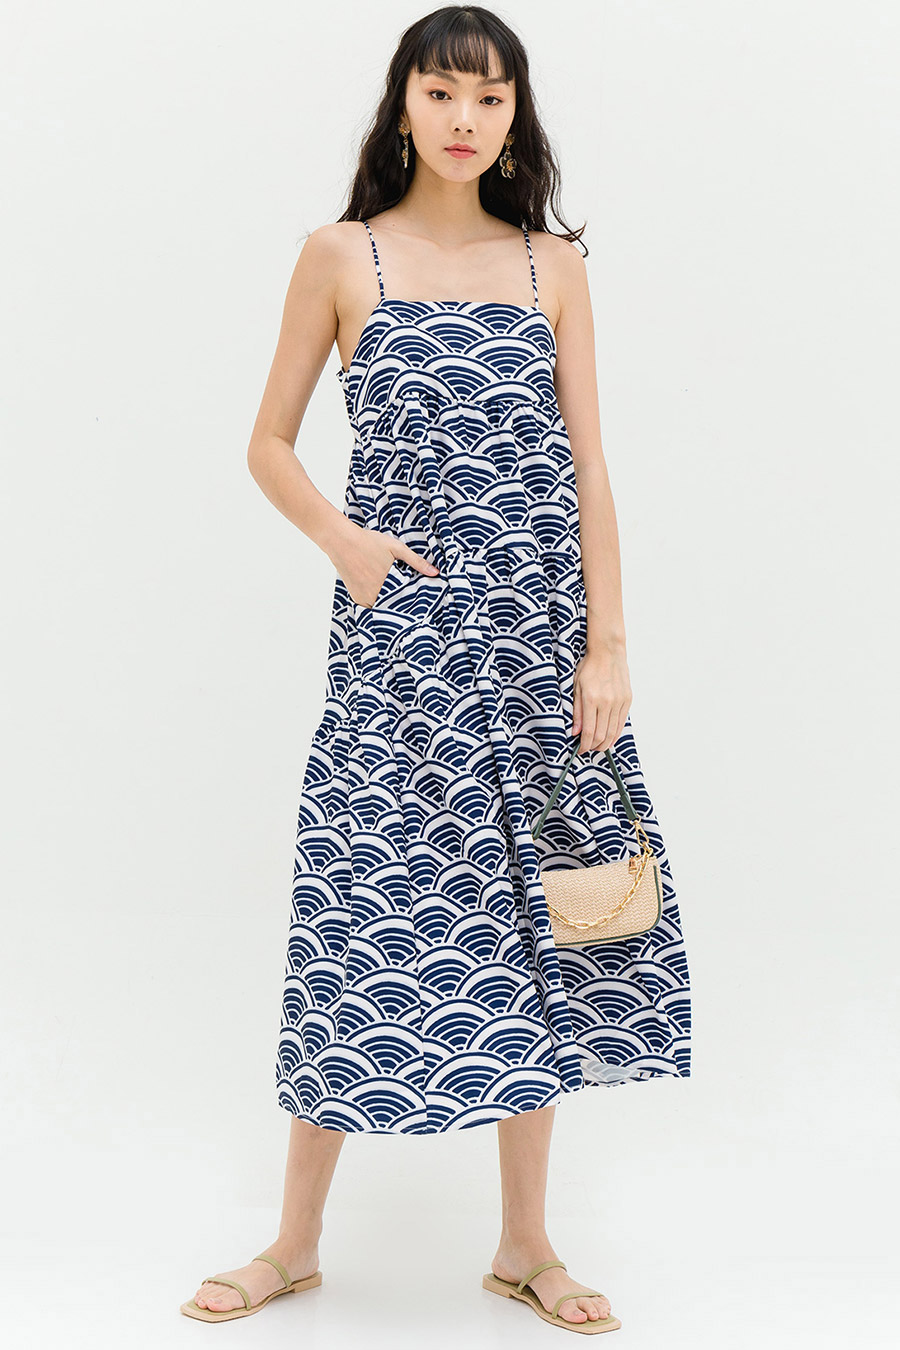 *RESTOCKED* OLIVIA DRESS - KANAGAWA [BY MODPARADE]